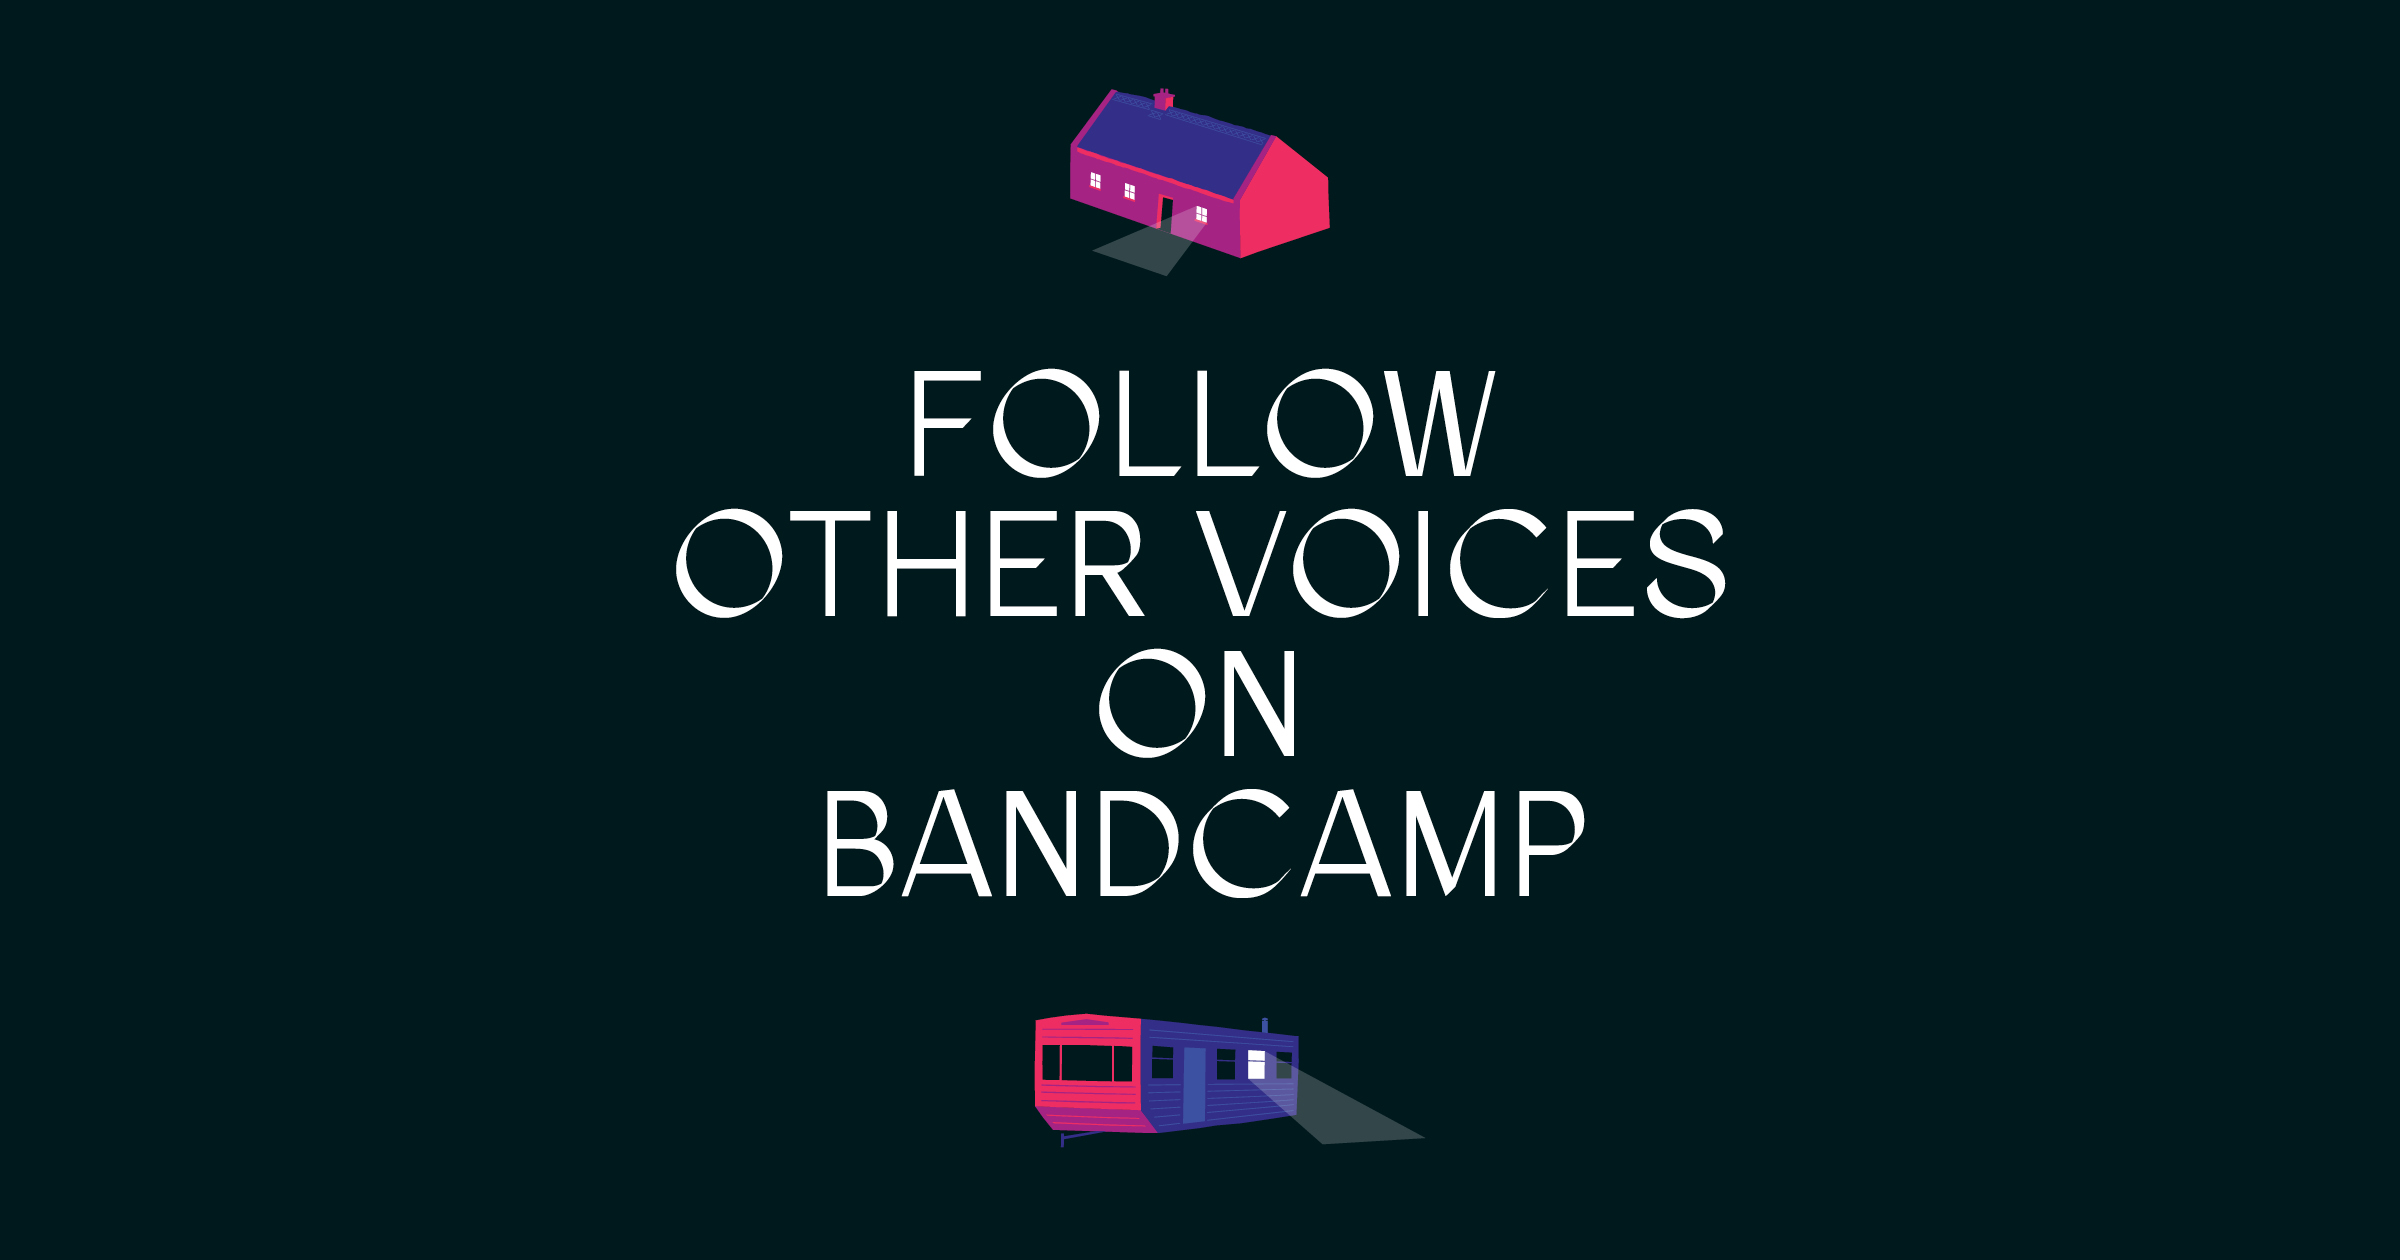 Other Voices is now on Bandcamp